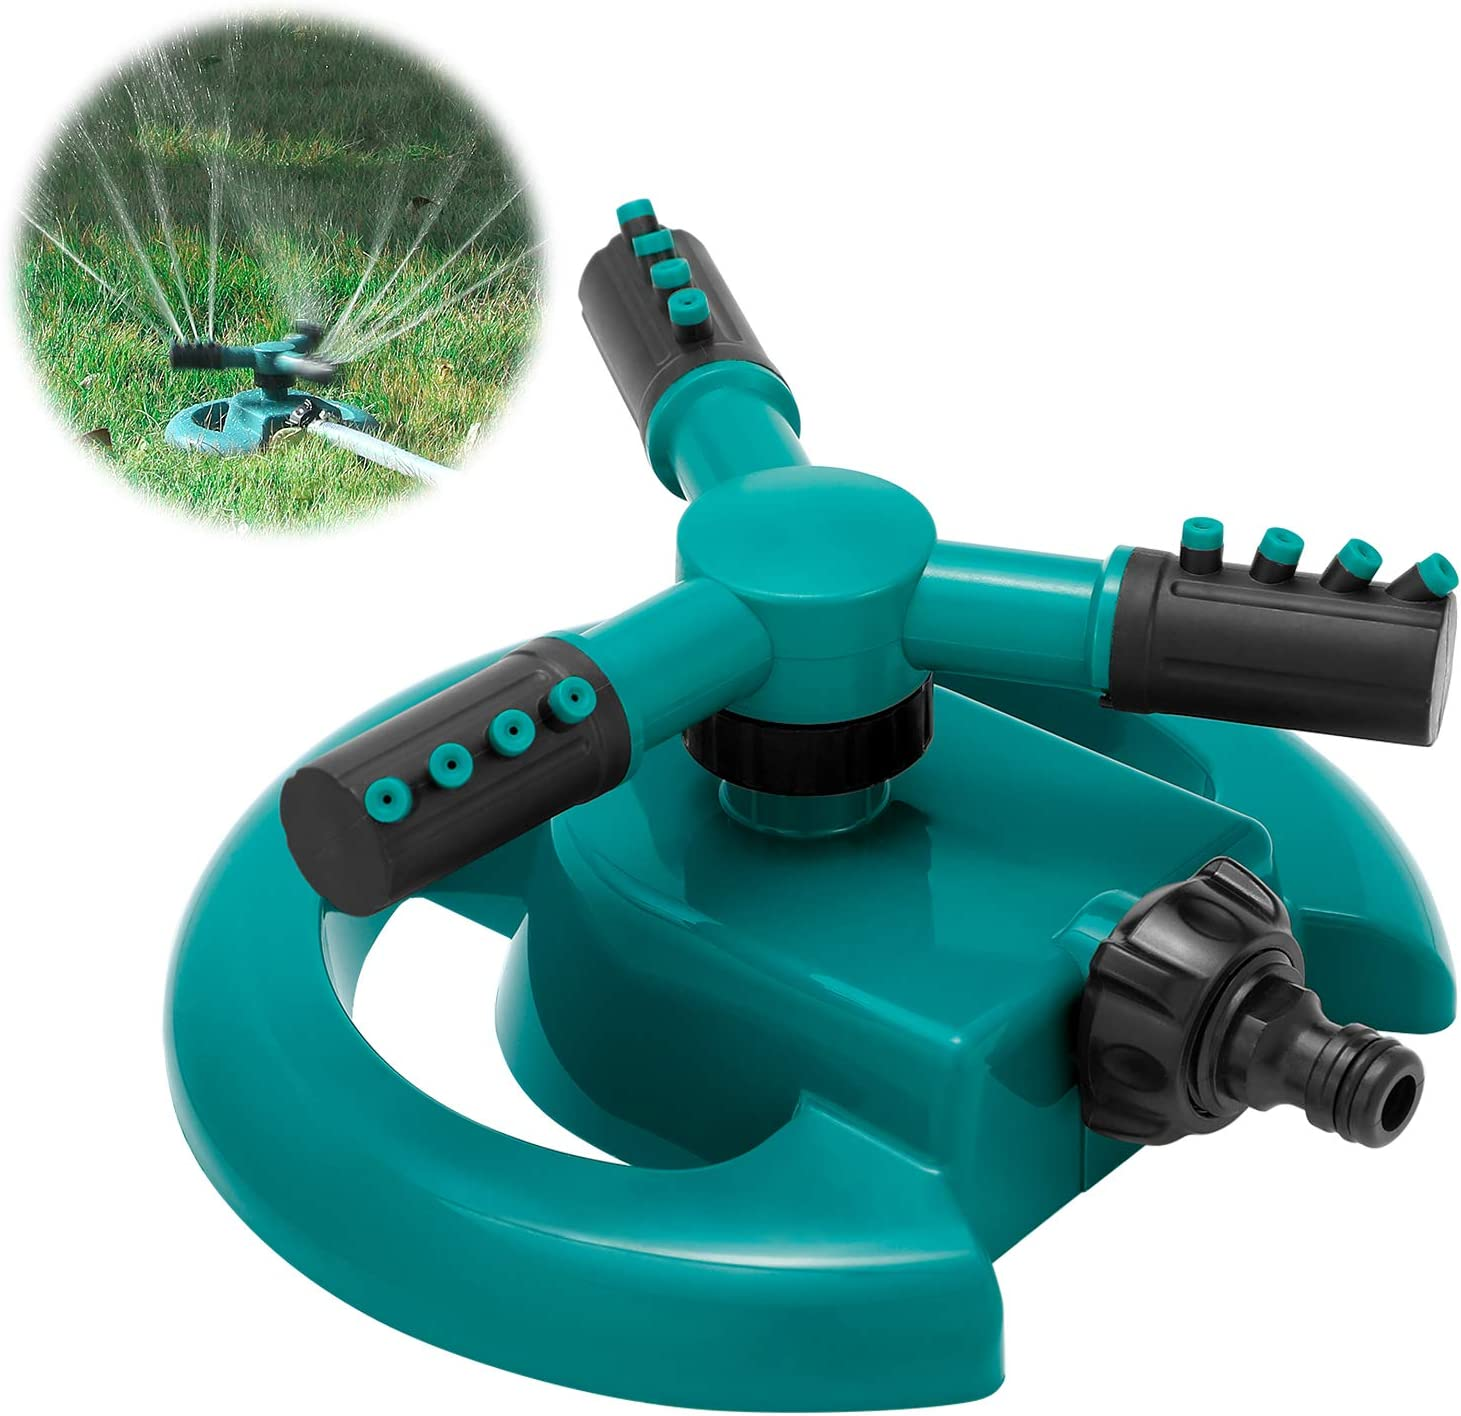 HTLY SPR Garden Sprinkler, Automatic Lawn Sprinkler 360 Degree Rotating 3 Arms Adjustable WAS £9.99 NOW £4.49 with single use codes @ Amazon